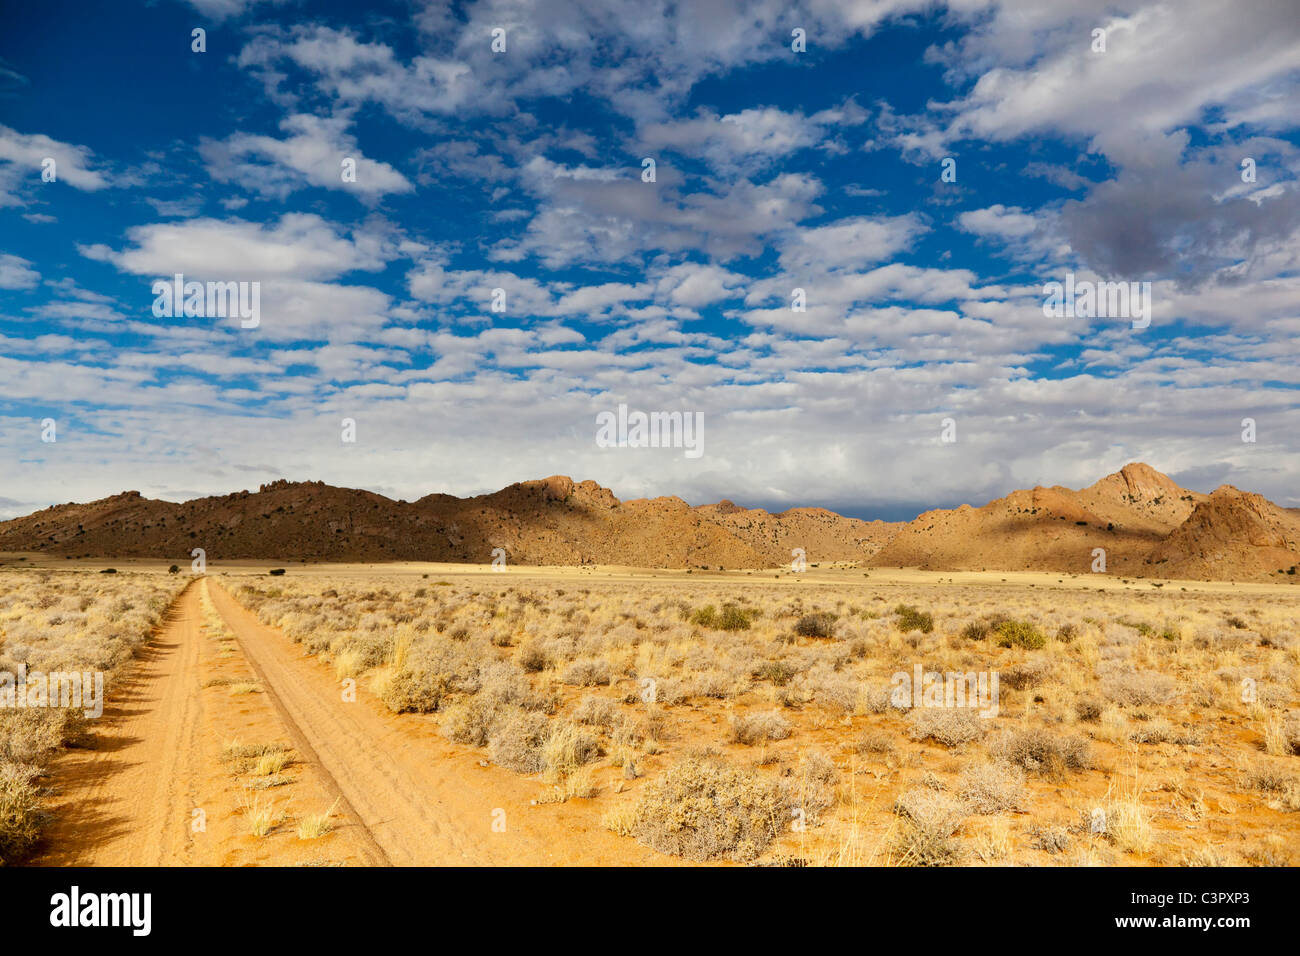 Africa, Namibia, Namib Desert, Track in Gondwana through through Namib Naukluft National Park - Stock Image